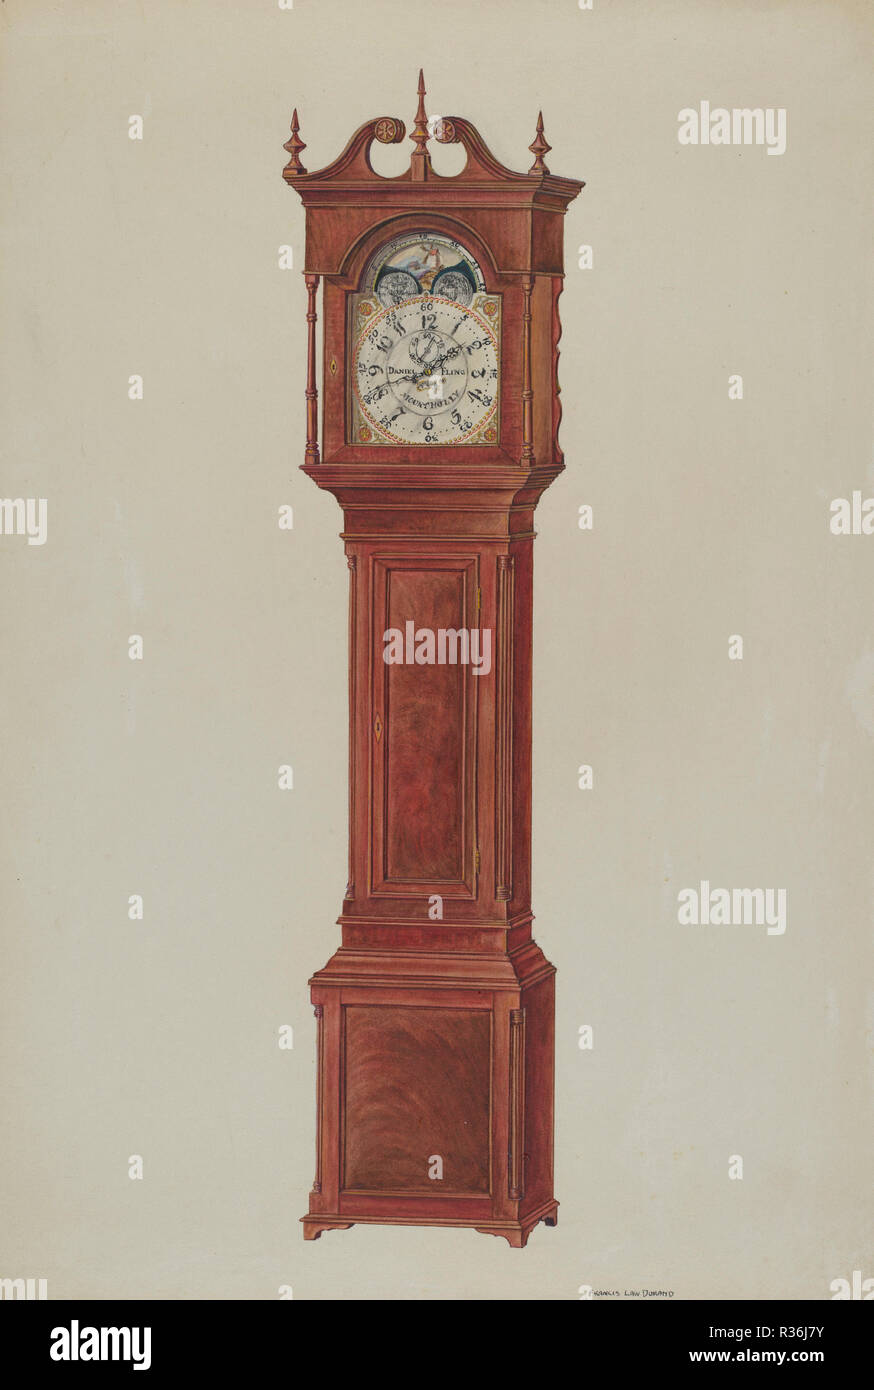 20 Century Stock Photos Images Page 135 Alamy Grandfather Clock Diagram Grandfathers Dated C 1937 Dimensions Overall 355 X 24